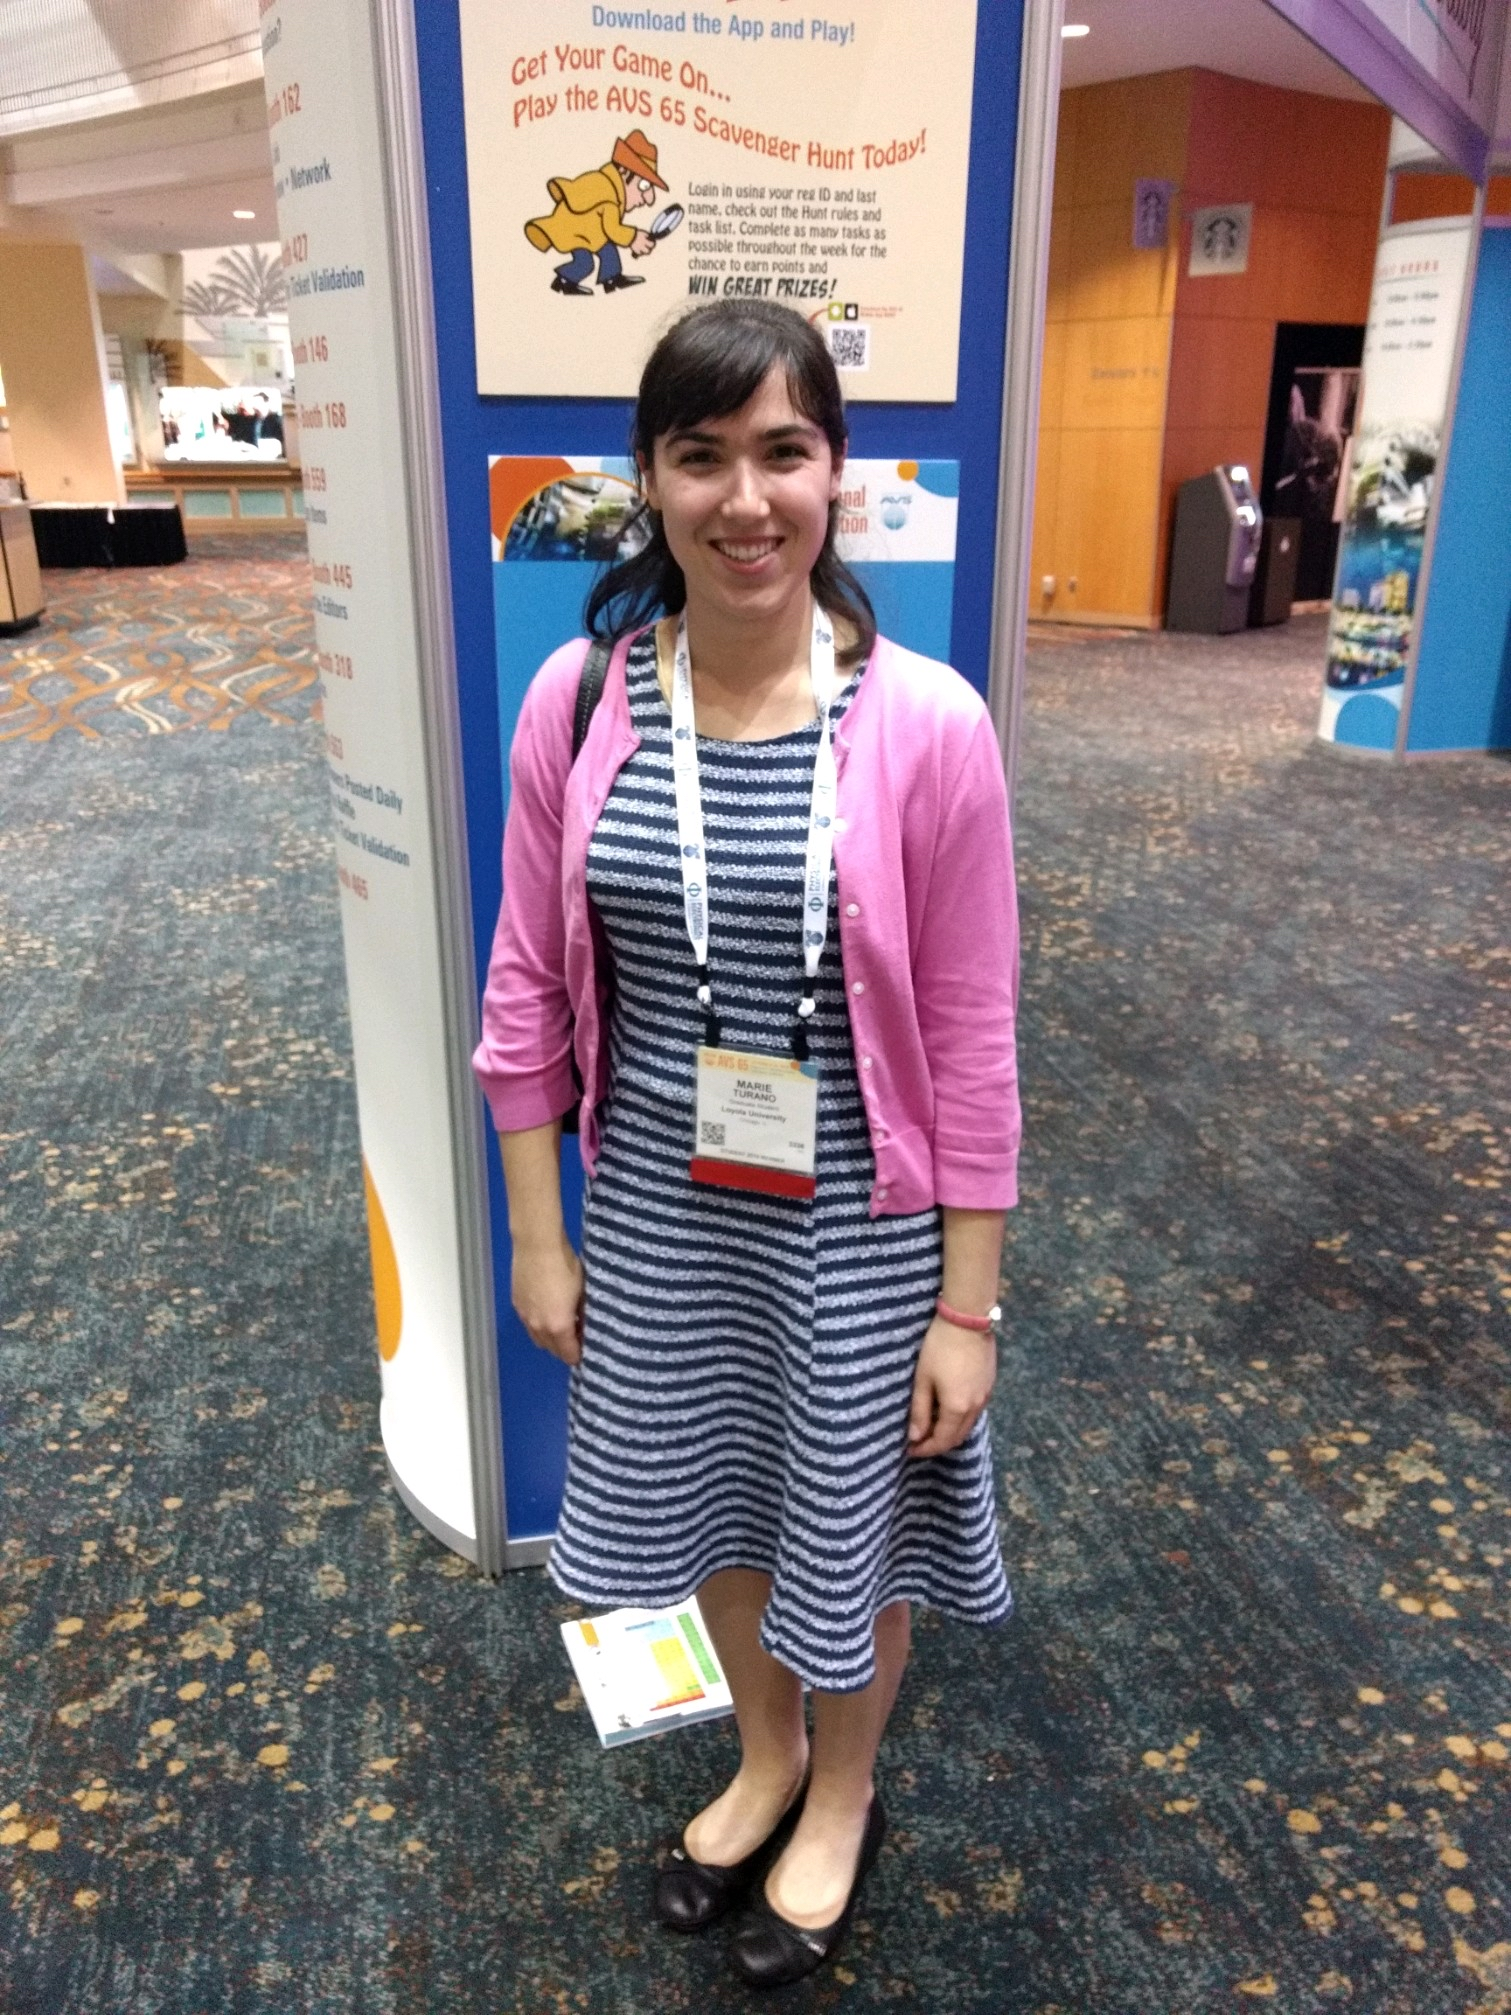 Marie at AVS 65 in Long Beach.